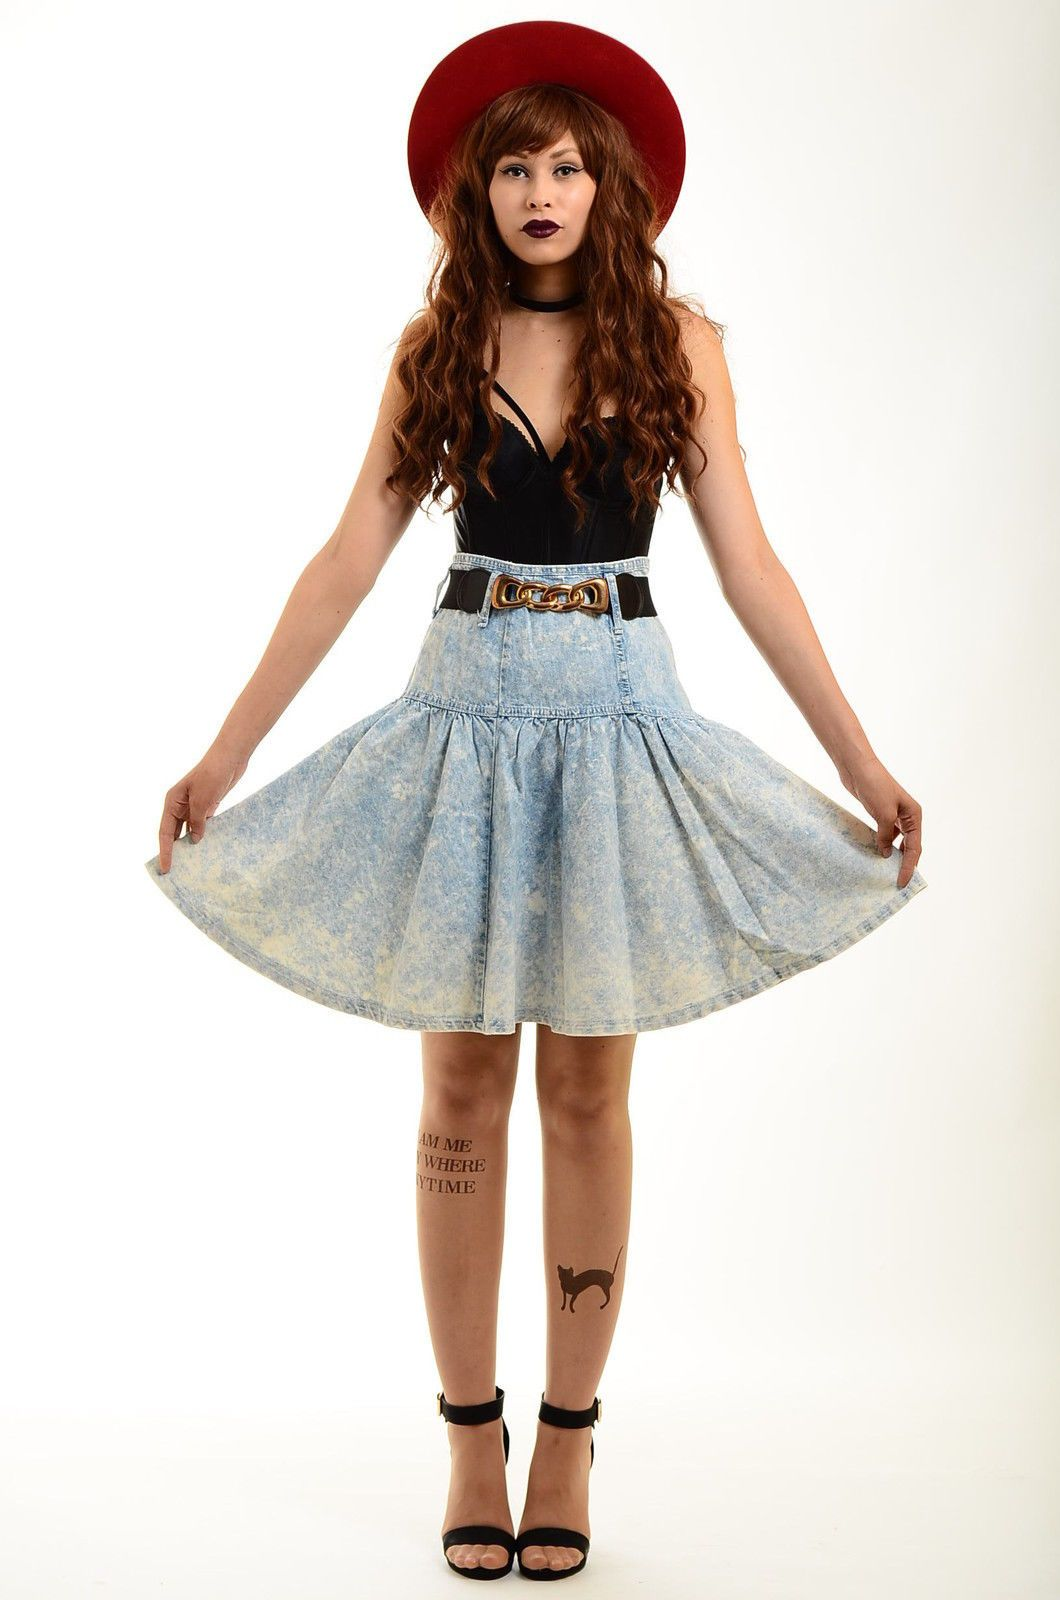 high waist denim shirt country goth style http://stores.ebay.co.uk/electricskinnyvintage